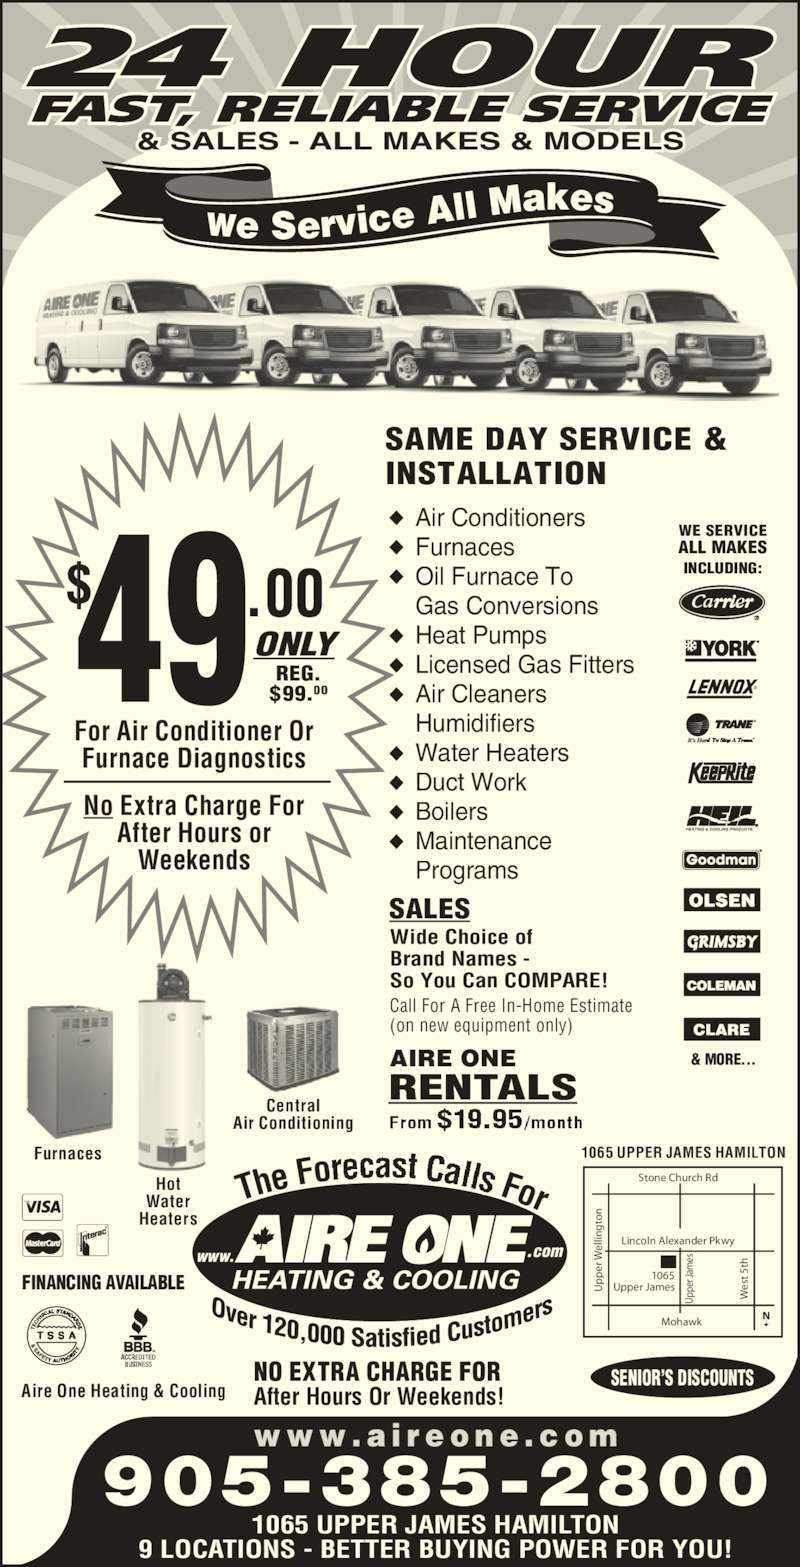 Aire One Heating & Cooling (905-385-2800) - Display Ad - lin Brand Names - So You Can COMPARE! Call For A Free In-Home Estimate (on new equipment only) es t  5t Up pe r J am es er el lin to AIRE ONE For Air Conditioner Or Furnace Diagnostics No Extra Charge For After Hours or Weekends 49$ .00ONLYREG.$99.00 1065 UPPER JAMES HAMILTON 9 LOCATIONS - BETTER BUYING POWER FOR YOU! NO EXTRA CHARGE FOR After Hours Or Weekends! SALES RENTALS Upper James Lincoln Alexander Pkwy Mohawk r J er  W el Stone Church Rd es t  5t Up pe Licensed Gas Fitters Air Cleaners Humidifiers Water Heaters Duct Work Boilers Heat Pumps Maintenance Programs FINANCING AVAILABLE SENIOR'S DISCOUNTS Aire One Heating & Cooling SAME DAY SERVICE & INSTALLATION .comwww. The Fo For w w w . a i r e o n e . c o m 905-385-2800 & MORE... INCLUDING: WE SERVICE ALL MAKES INCLUDING: FAST, RELIABLE SERVICE 24 HOUR & SALES - ALL MAKES & MODELS We Service All  Makes Wide Choice of ◆ ◆ ◆ ◆ ◆ ◆ ◆ ◆ ◆ ◆ Air Conditioners Furnaces Oil Furnace To Gas Conversions am es 1065 Water 1065 UPPER JAMES HAMILTONFurnaces Central Hot Air Conditioning to Heaters